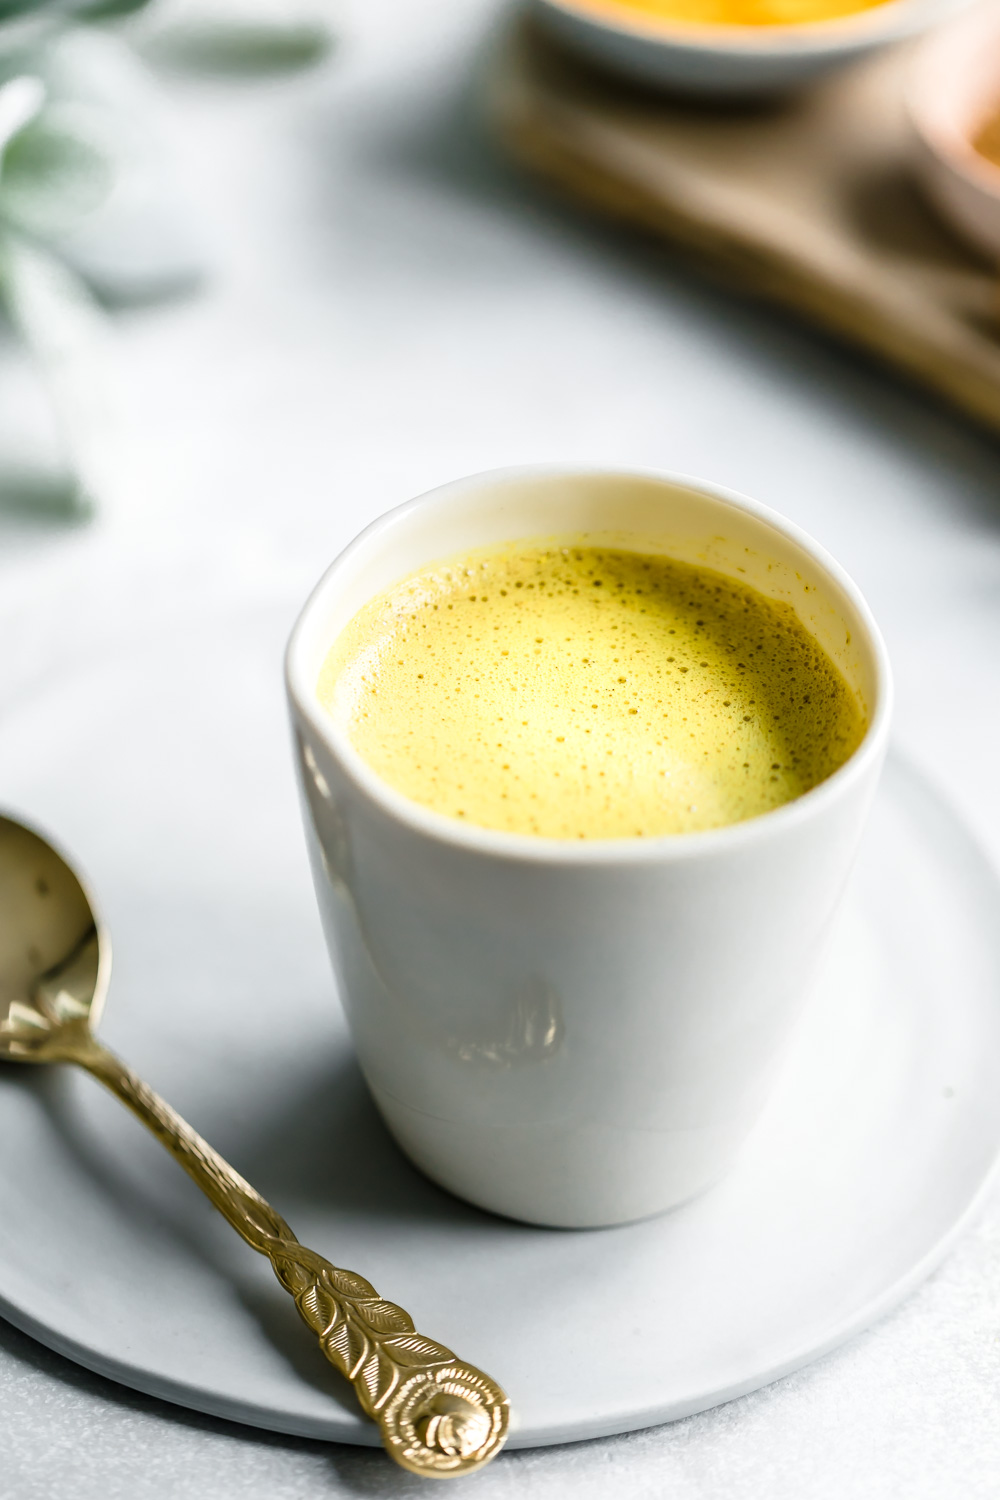 golden milk in white cup on a small white plate next to a golden teaspoon